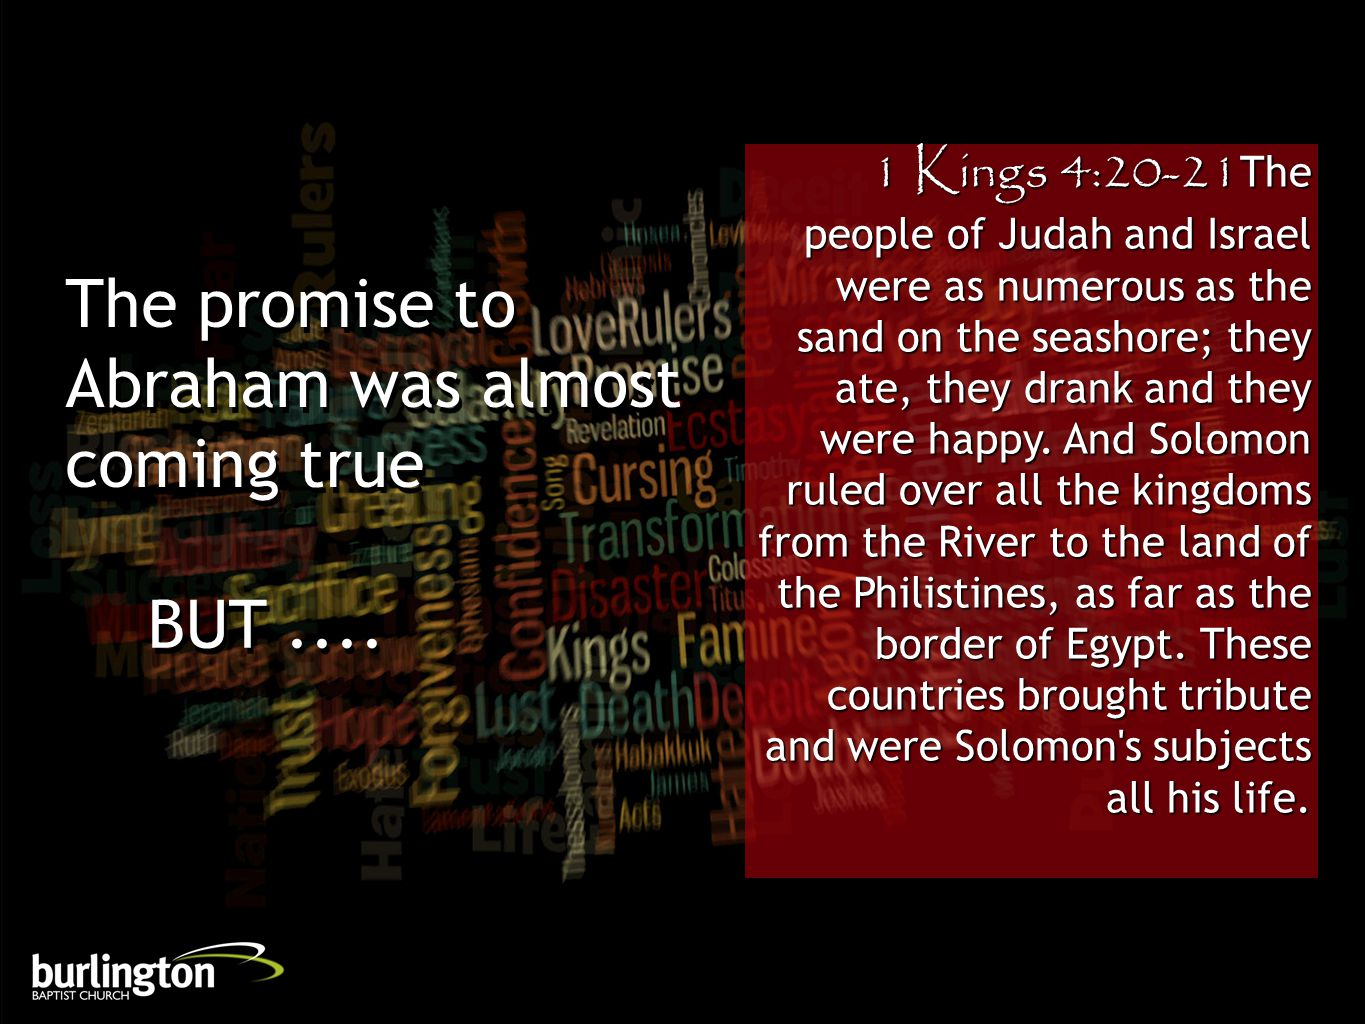 1 Kings 4:20-21The people of Judah and Israel were as numerous as the sand on the seashore; they ate, they drank and they were happy. And Solomon rule